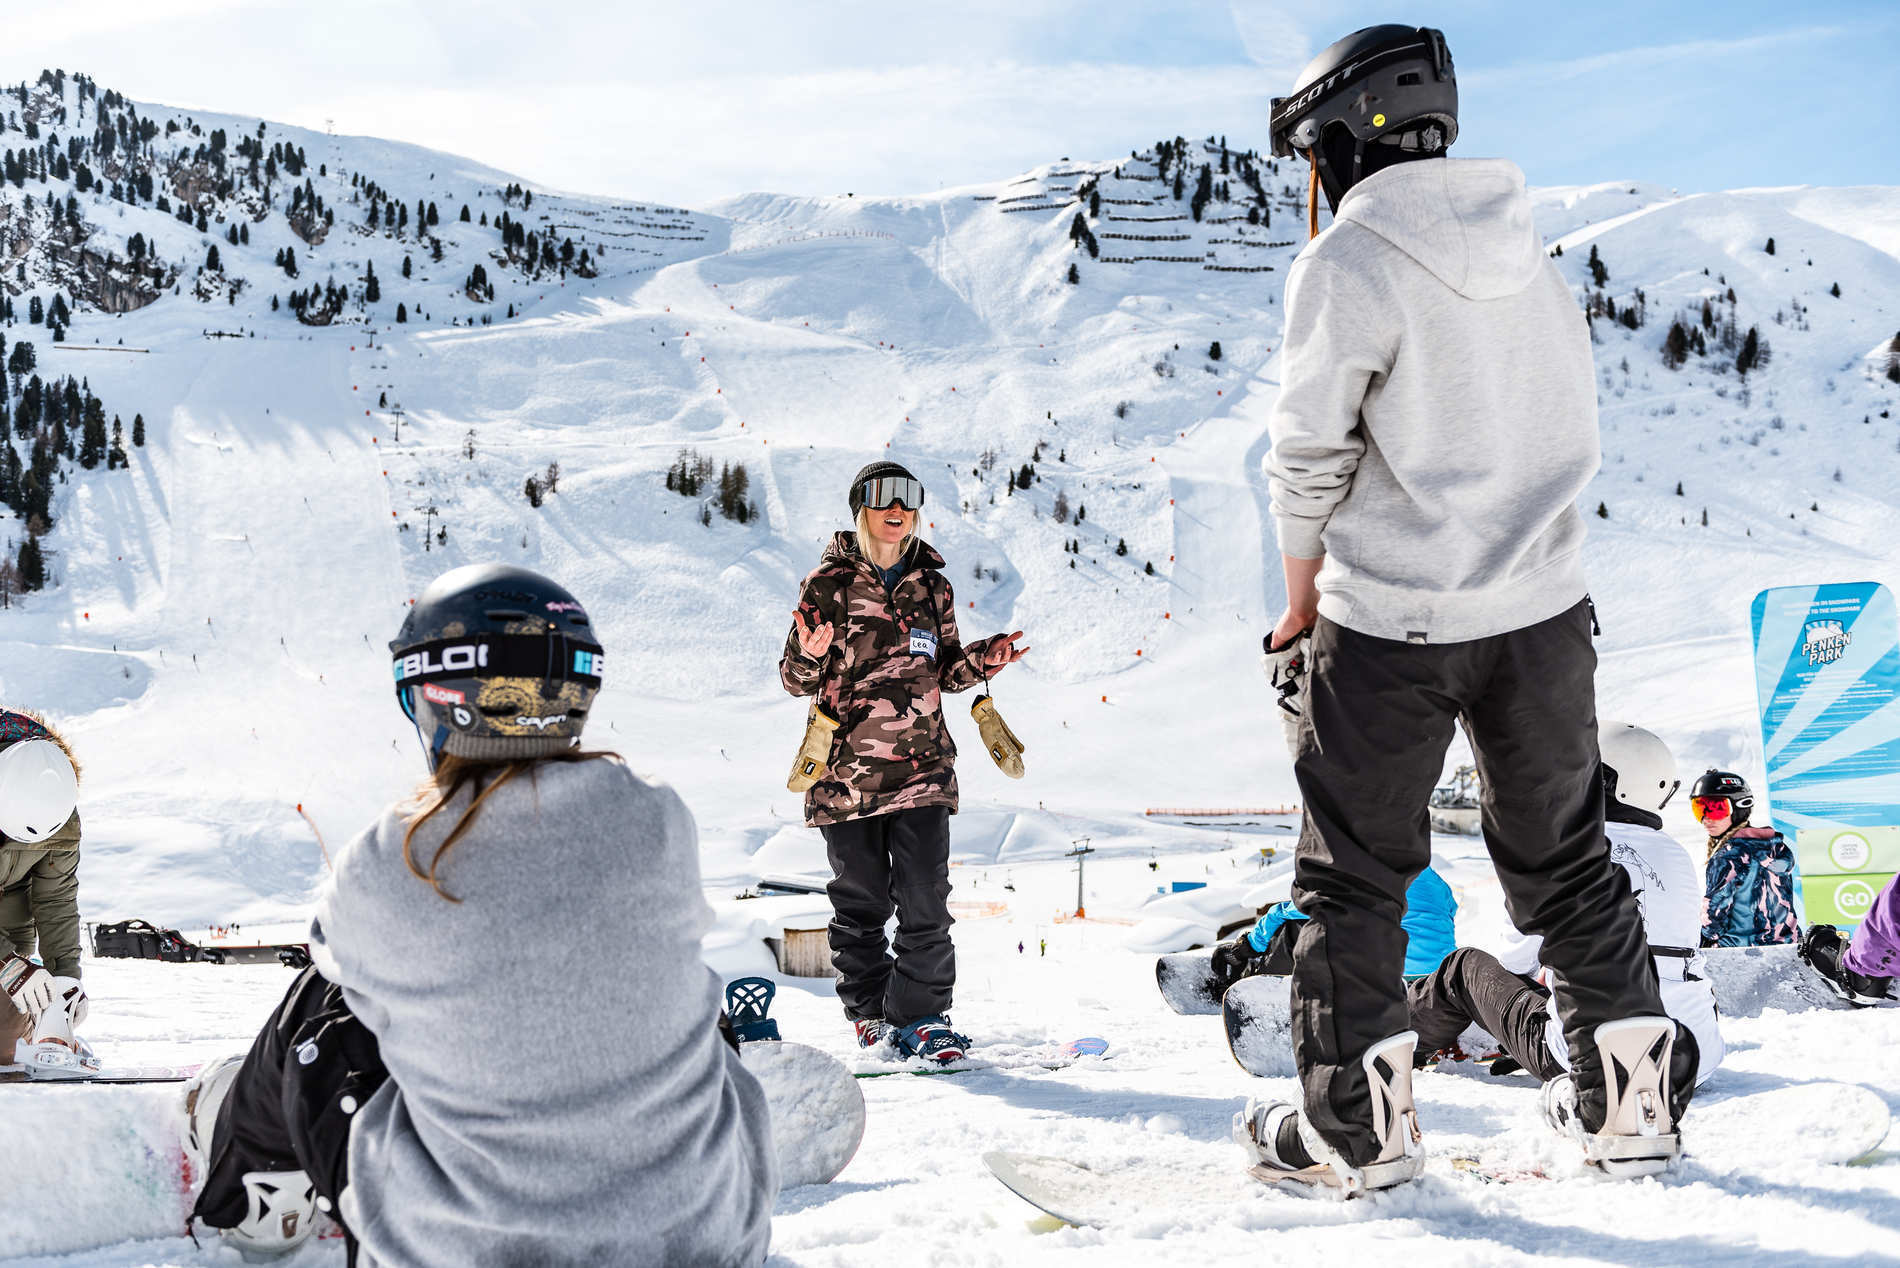 web mayrhofen 16 02 2019 lifestyle sb lea baumschlager christian riefenberg qparks 3